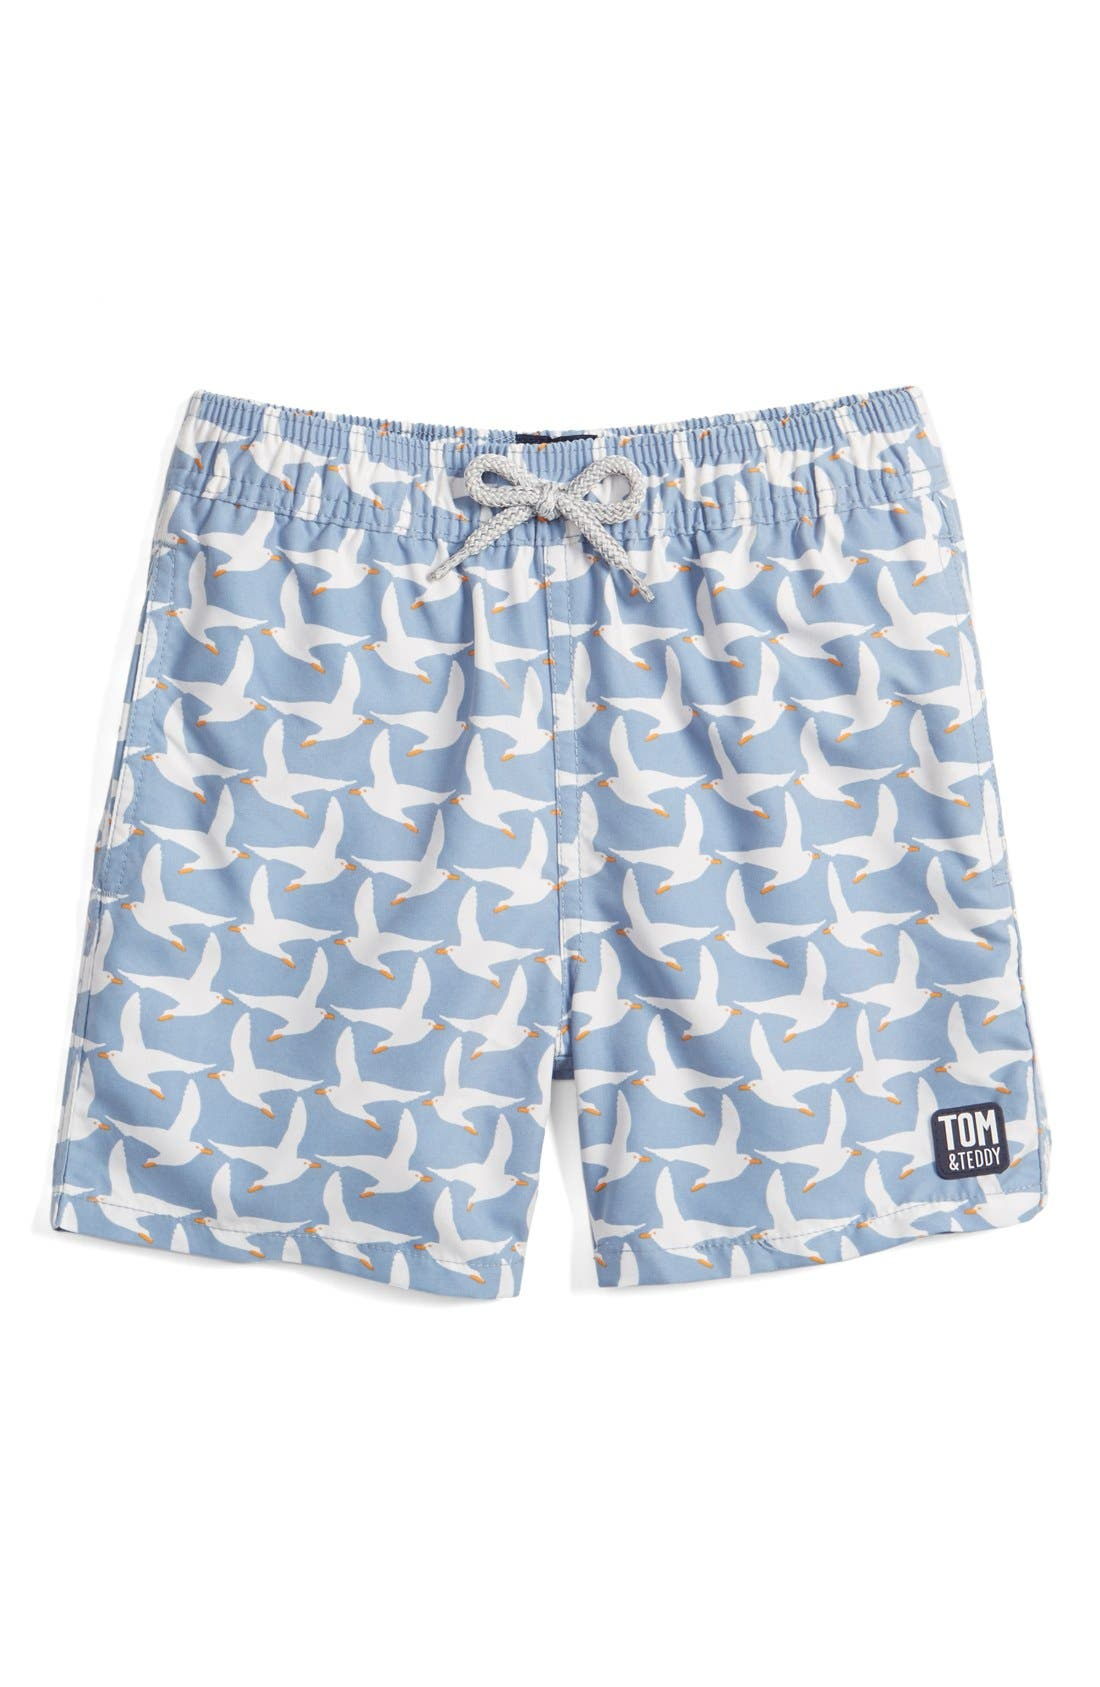 Tom & Teddy 'Pattern Seagulls' Swim Trunks (Toddler Boys, Little Boys & Big Boys)